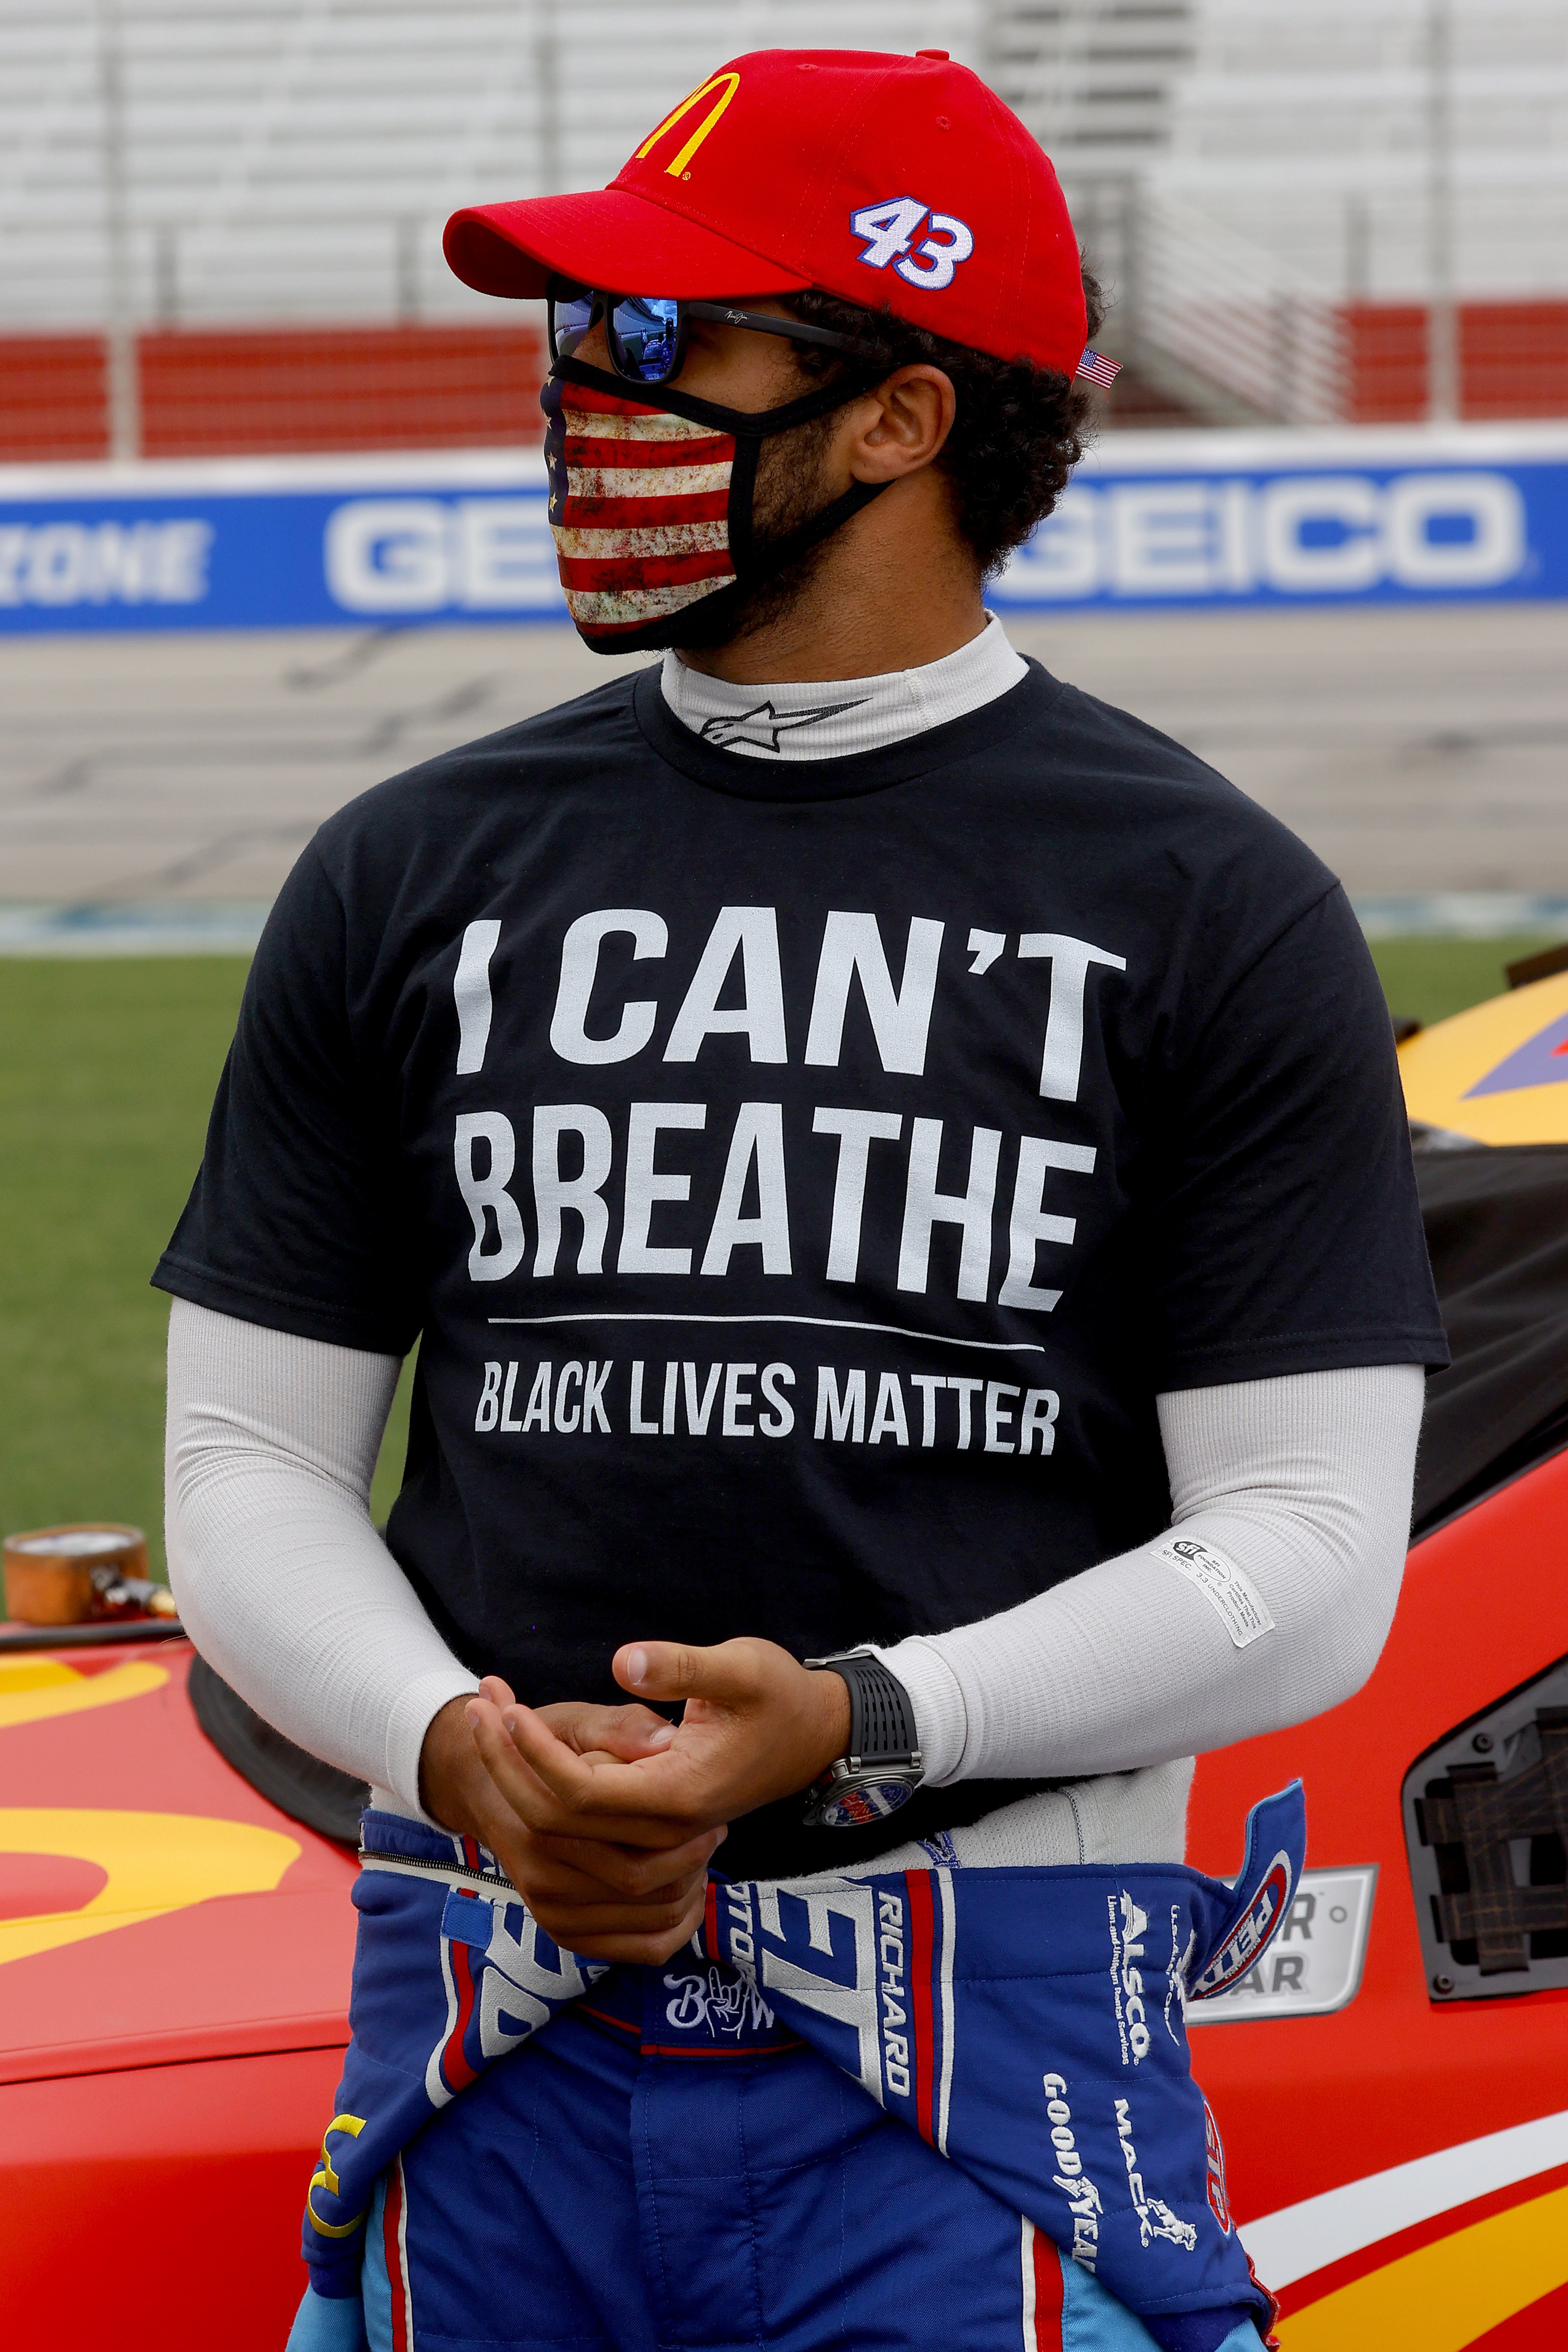 Top NASCAR racer Bubba Wallace donned a statement shirt in solidarity with the black community. | Photo: Getty Images